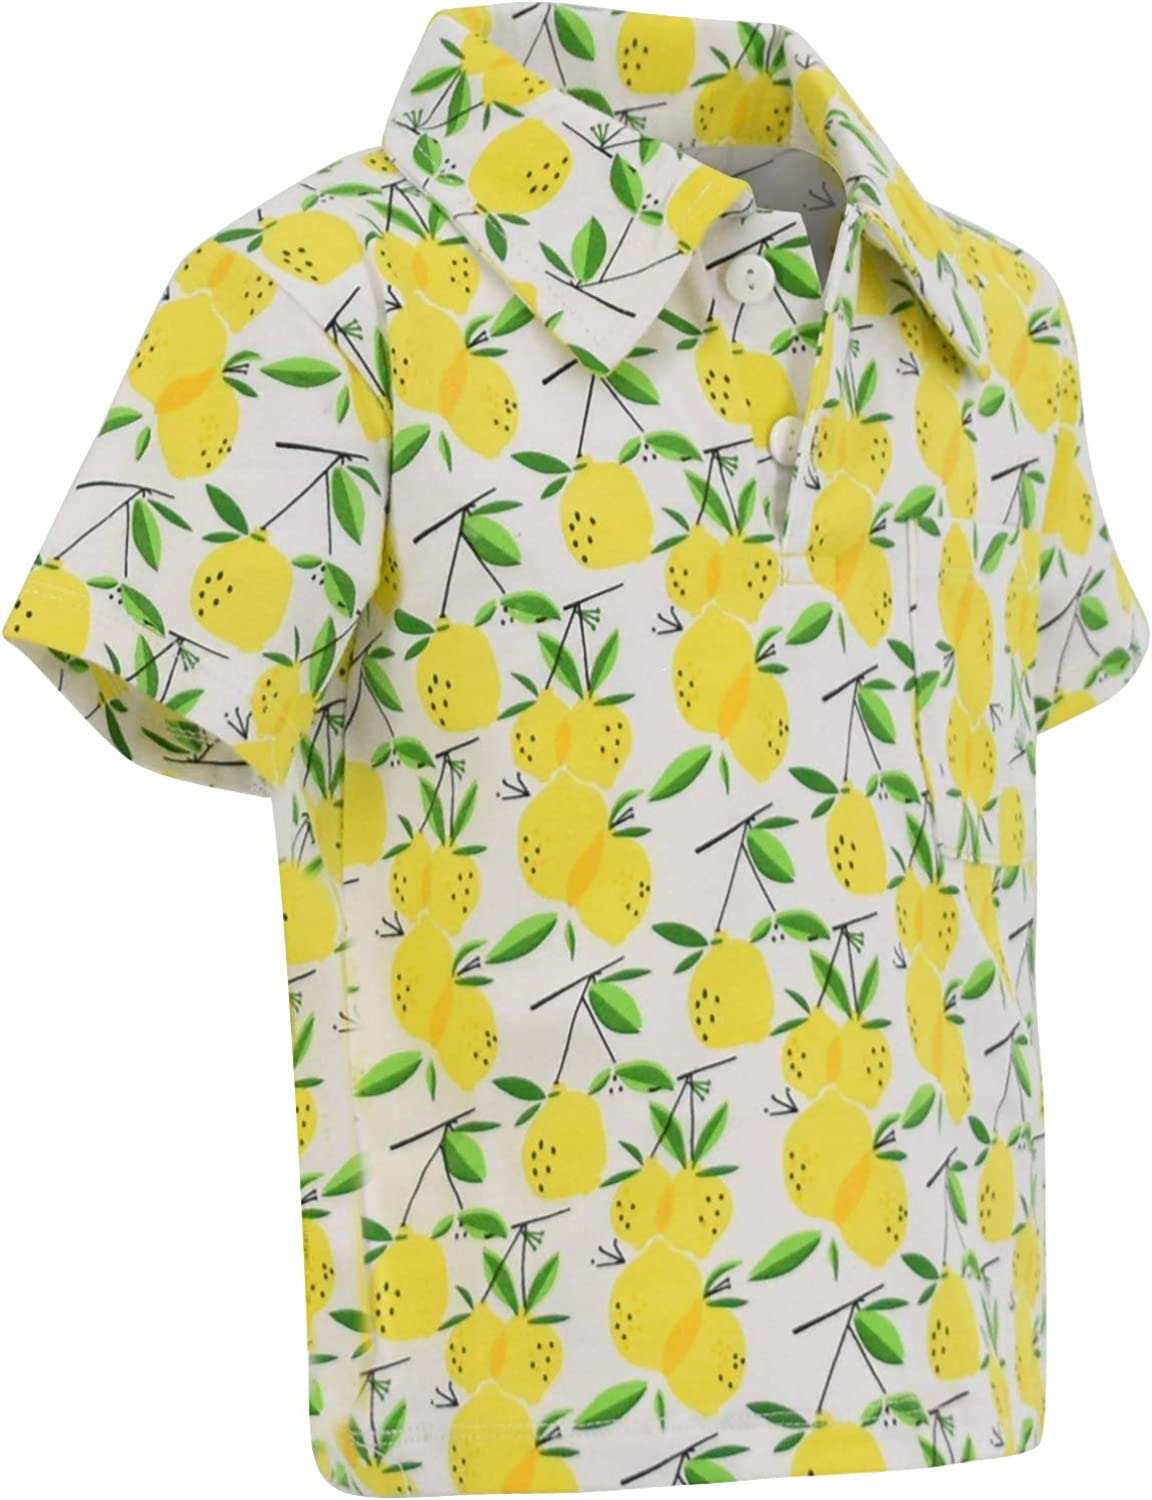 Domple Mens Short Sleeve Summer Beach Lemon Print Slim Button Up Dress Shirt